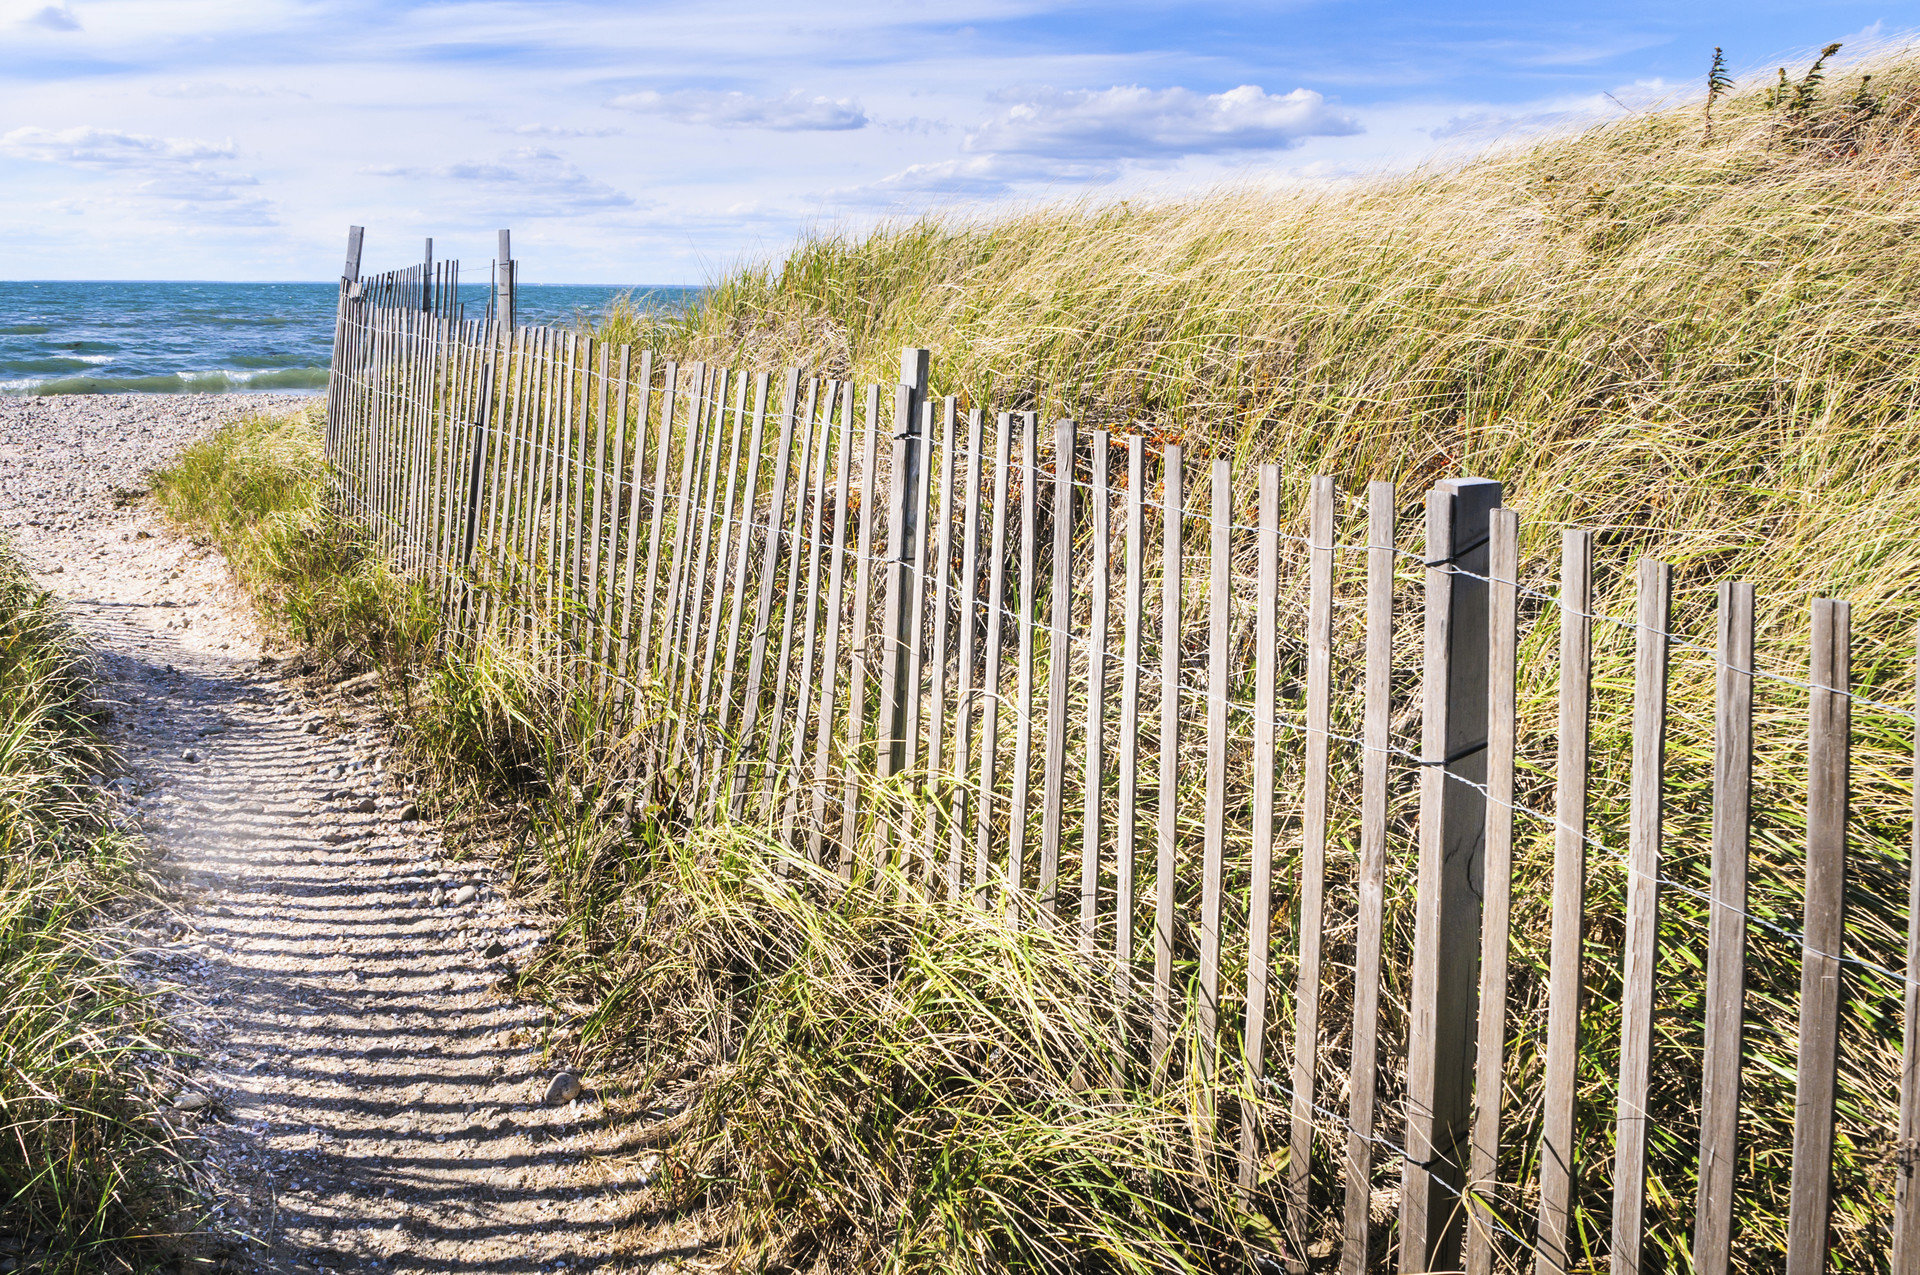 Trip Ideas Fence sky outdoor grass habitat agriculture natural environment ecosystem tree walkway grass family field wetland outdoor structure home fencing Coast shrub marsh overlooking